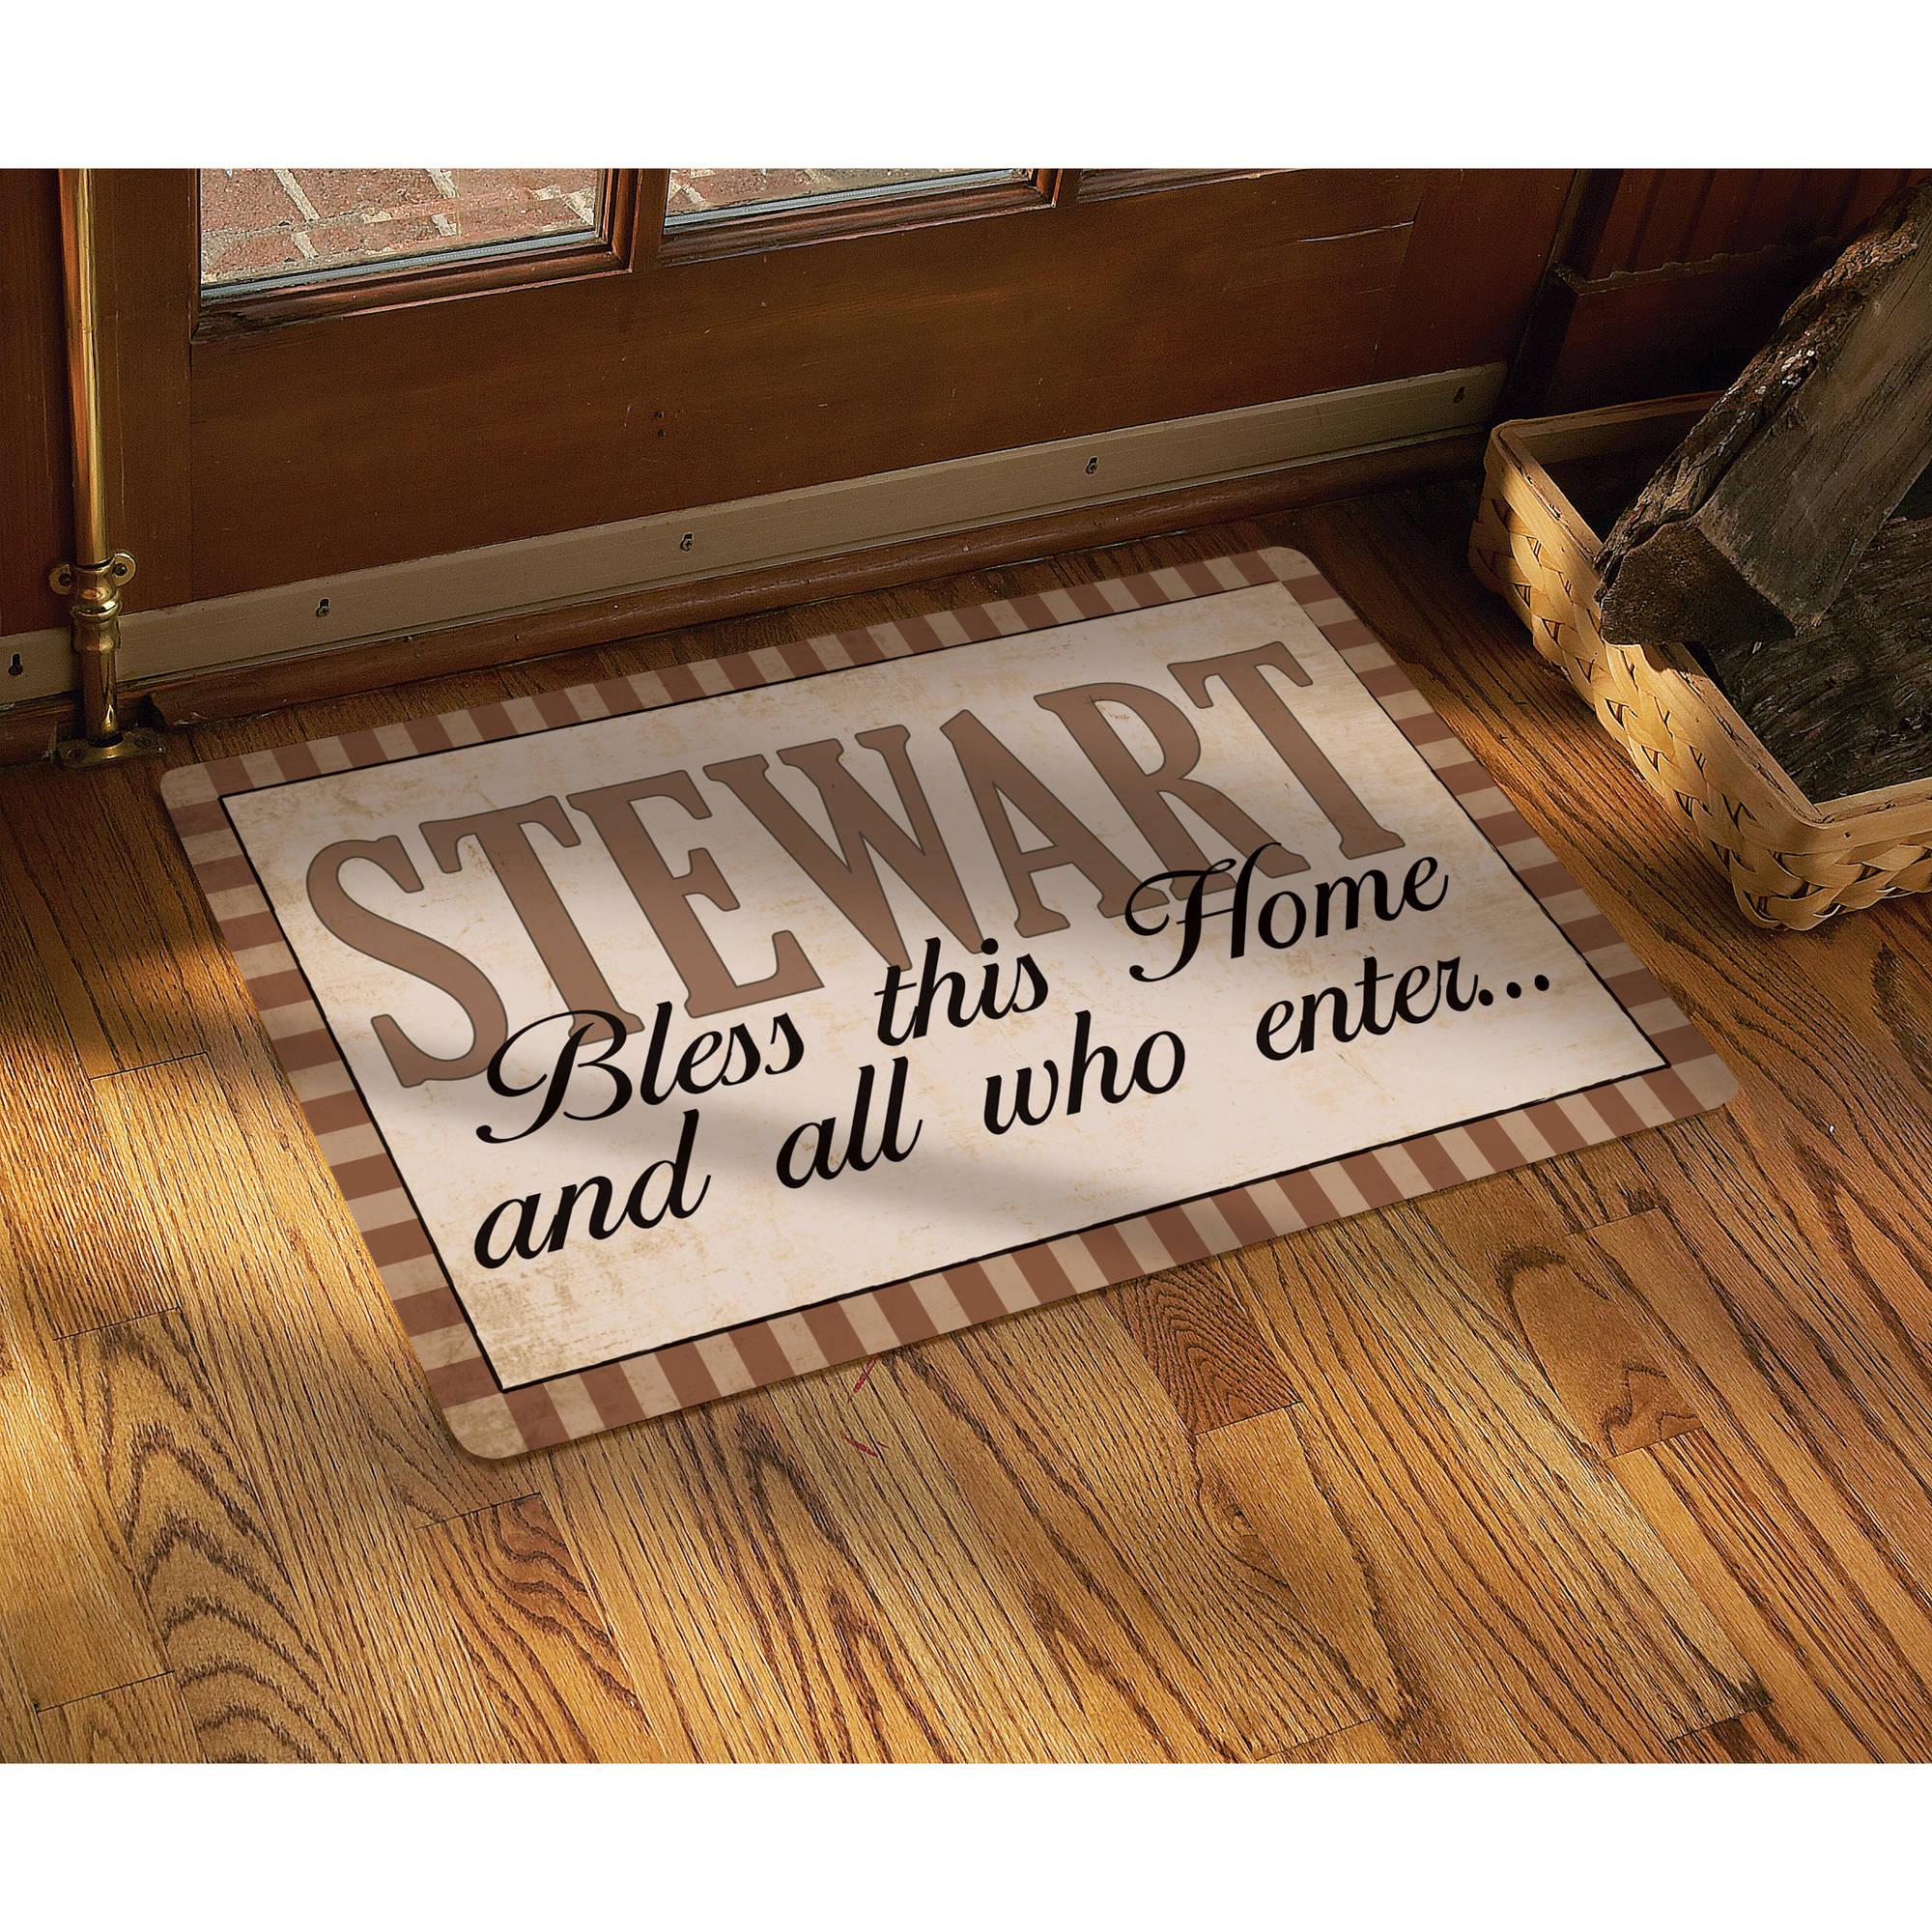 Personalized rustic bless all who enter doormat 17 x 27 multiple colors walmart com